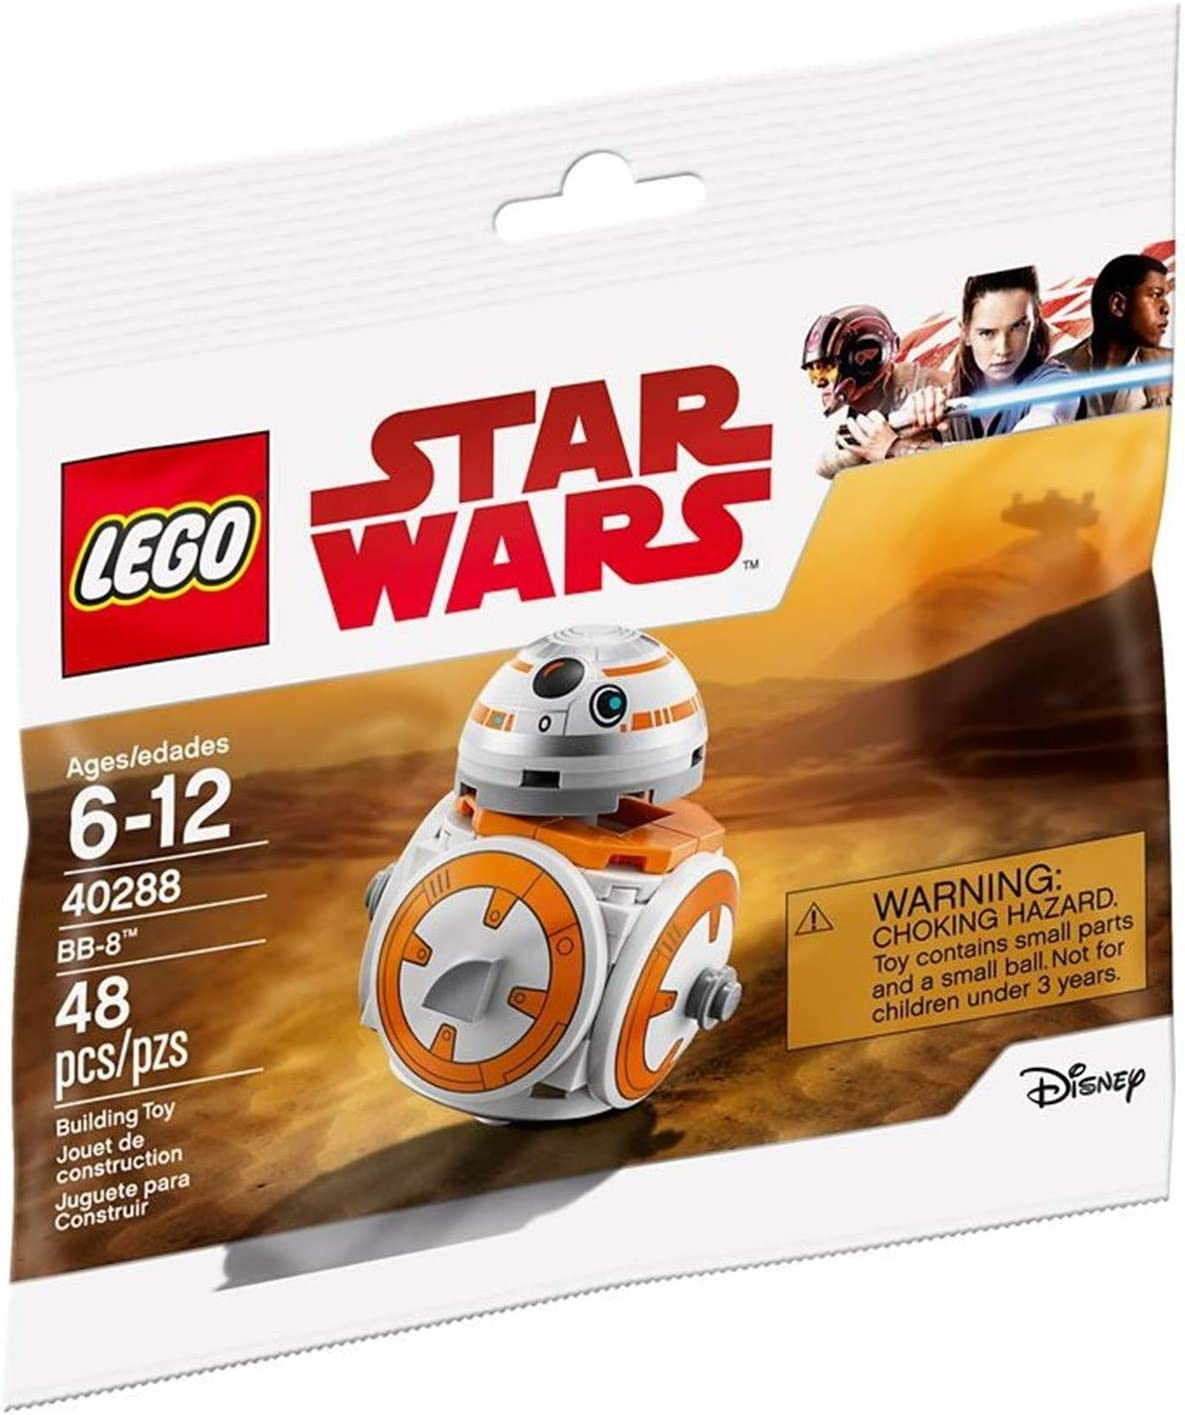 LEGO Star Wars BB-8 Polybag 40288